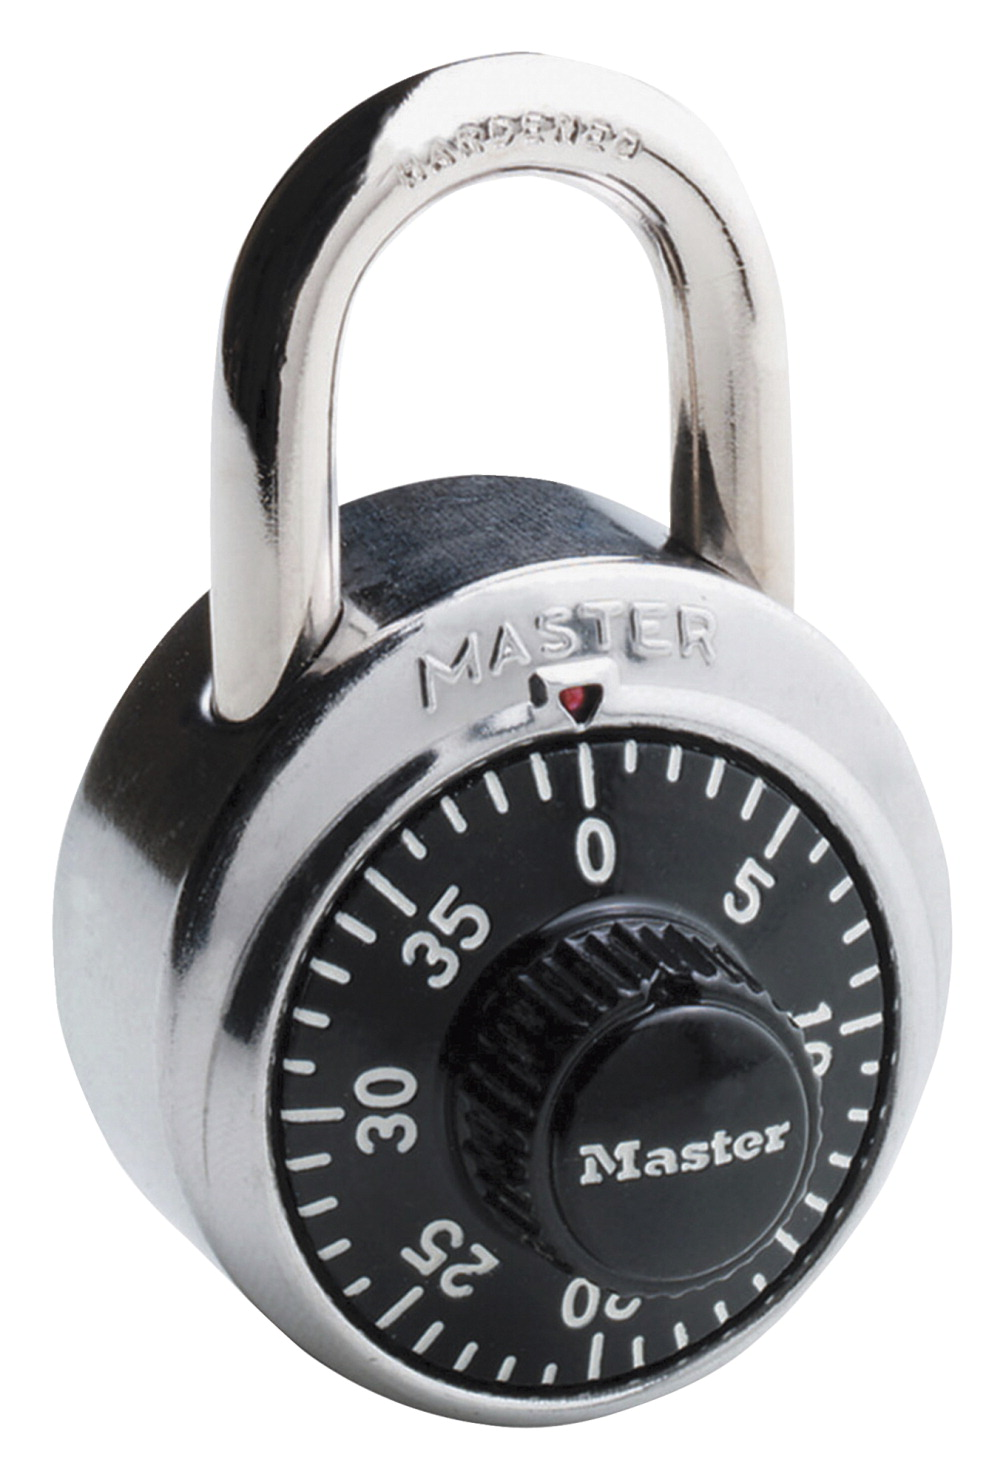 Master Lock 3-Digit Dialing Combination Padlock, 1-7/8 in W, Stainless Steel, Wrought Steel, Hardened Steel